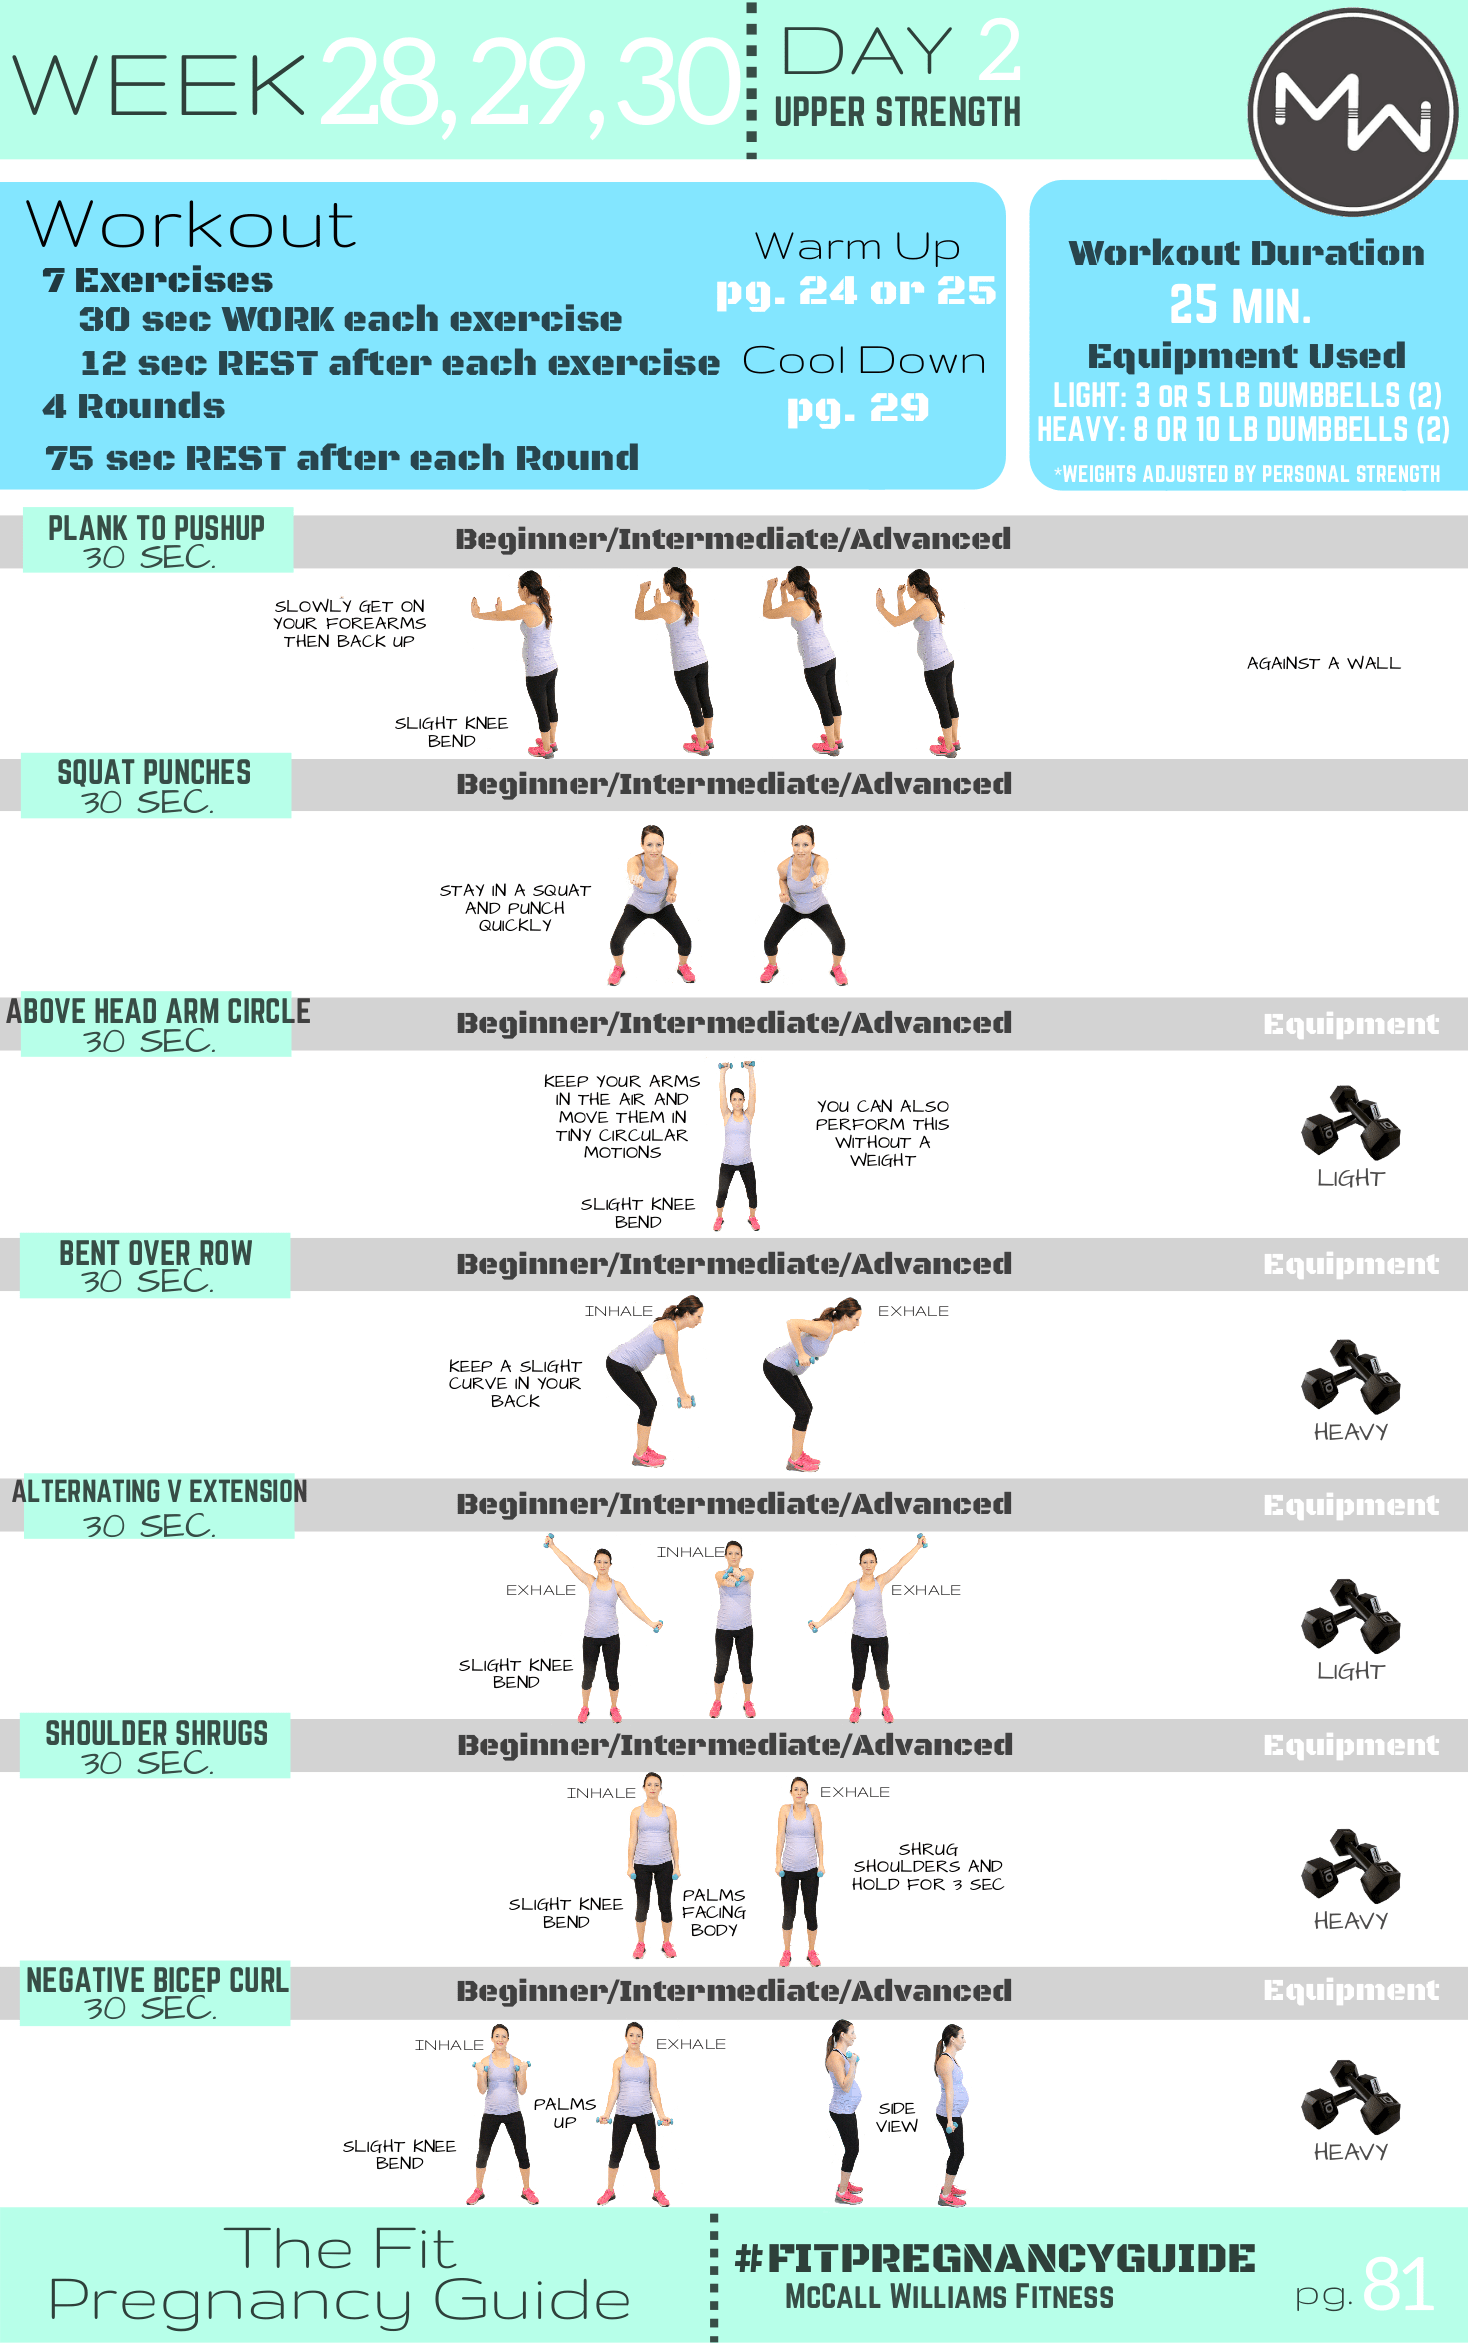 The FIT Pregnancy Guide - McCall Williams Fitness